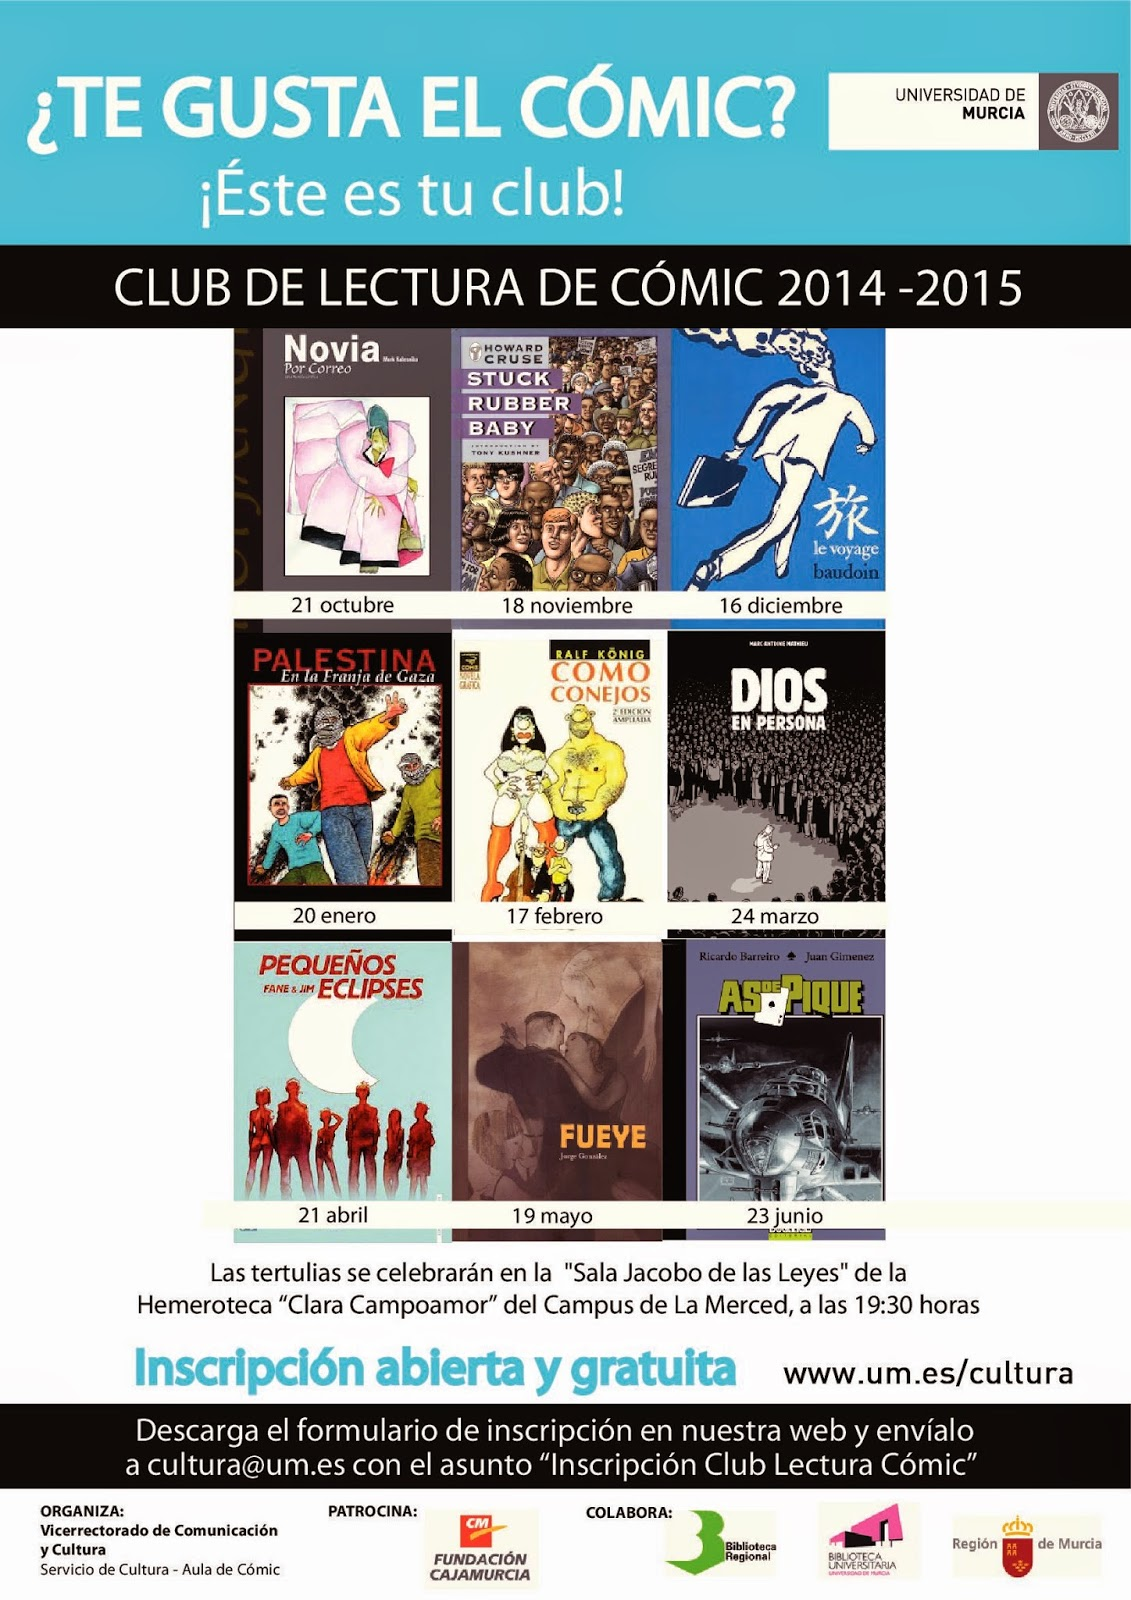 Club de lectura de cómic.